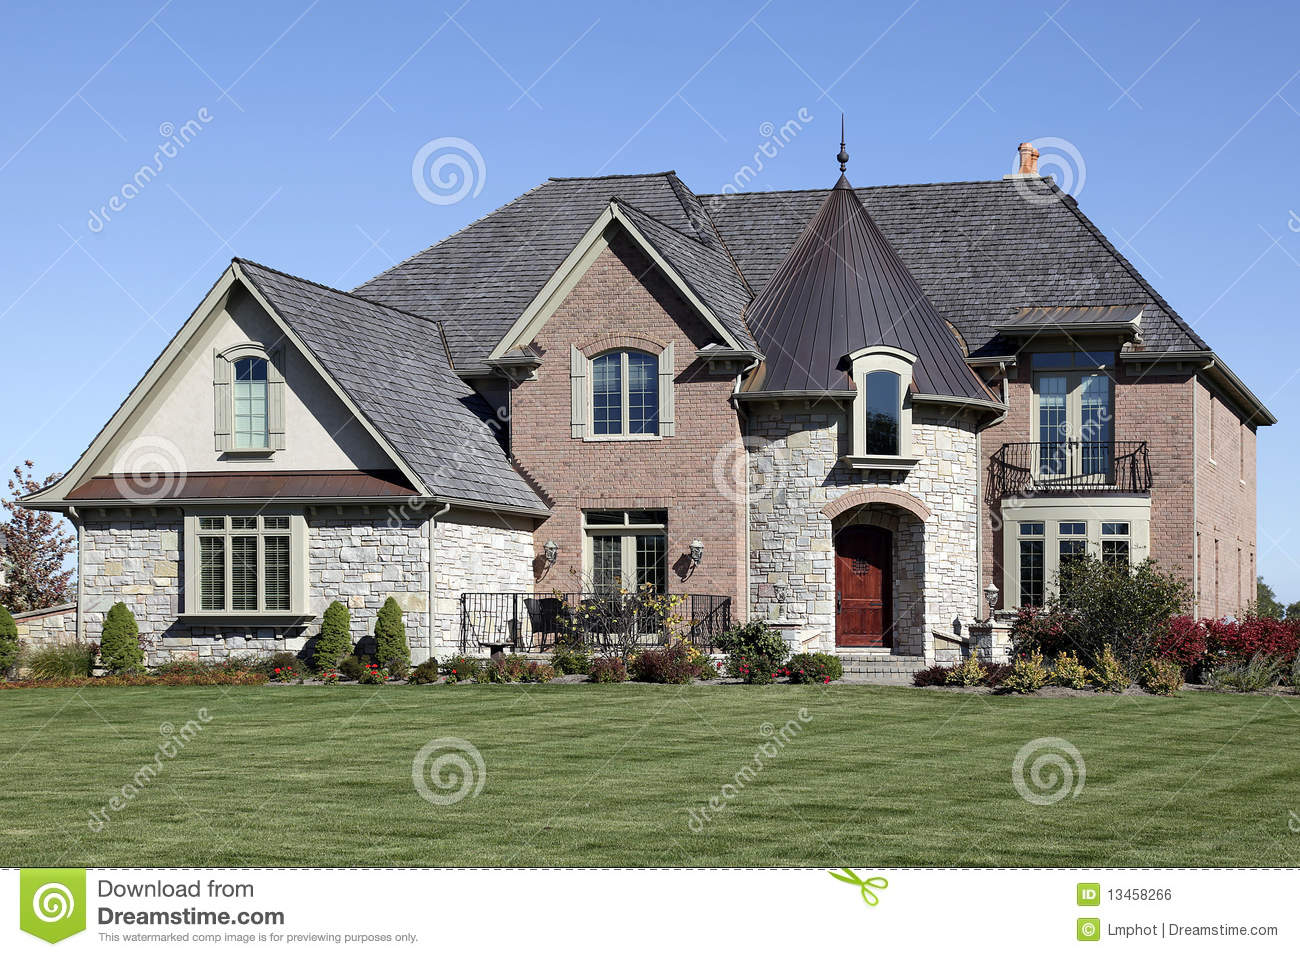 Luxury home with turret royalty free stock image image for Free luxury home images